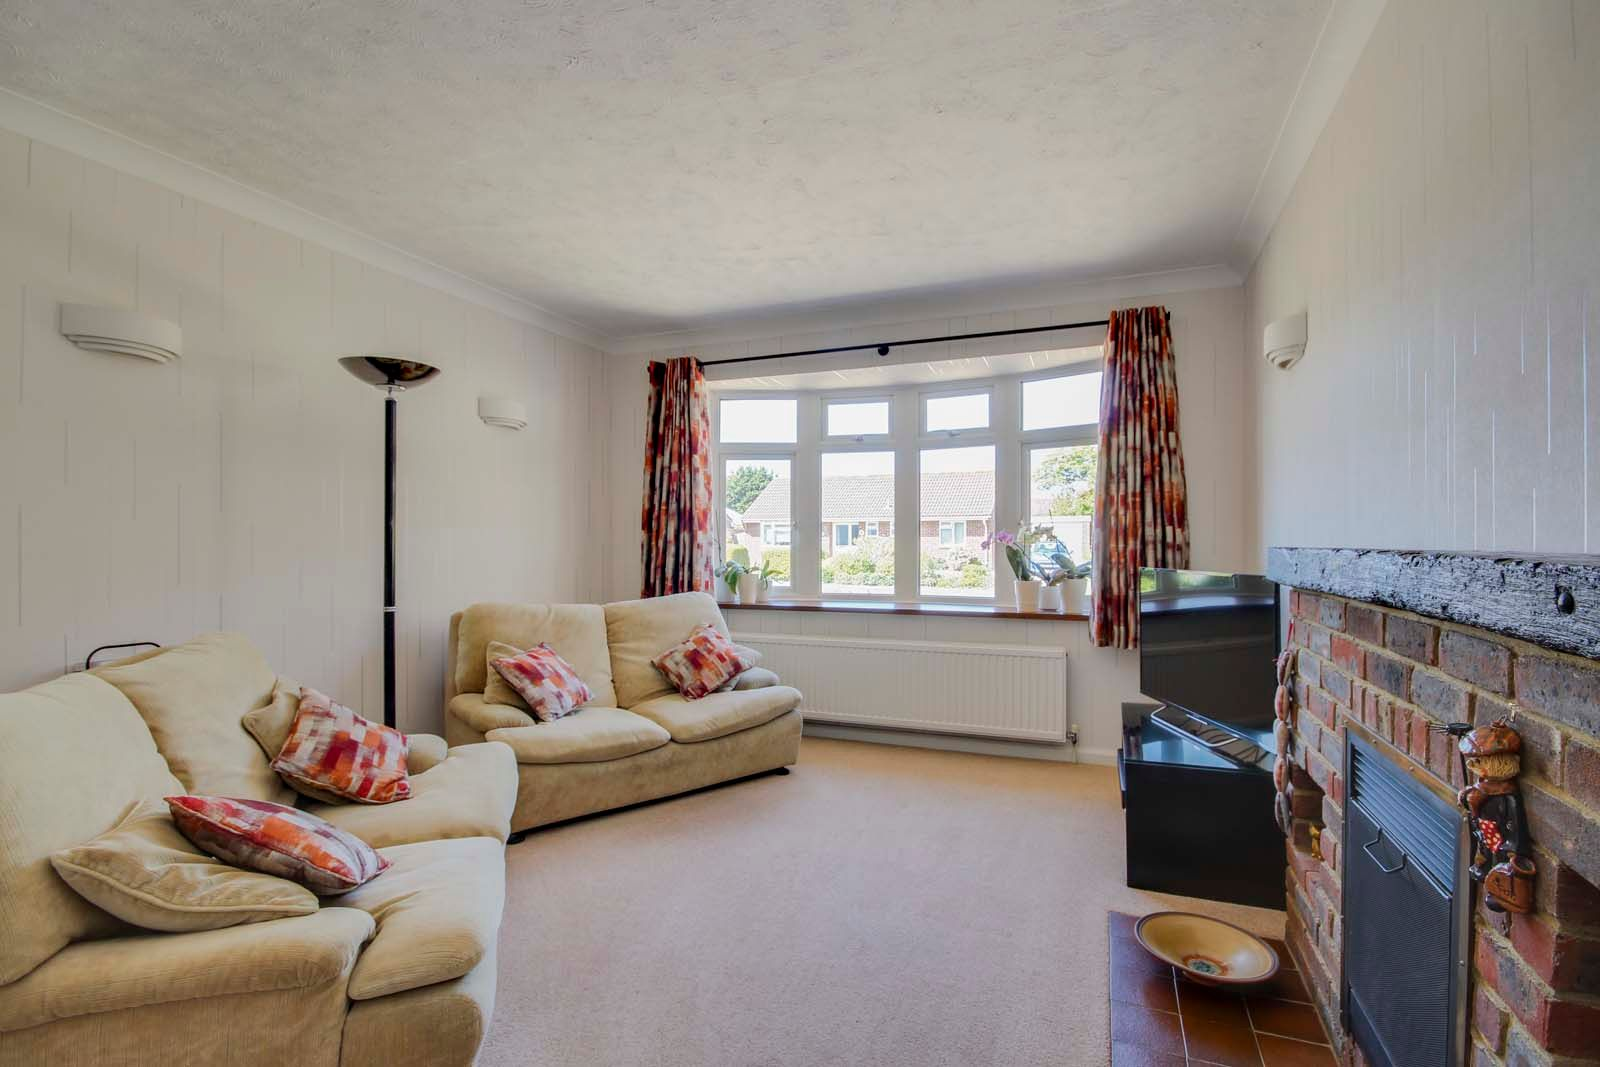 4 bed house for sale in Meadow Park COMP July 2019 3